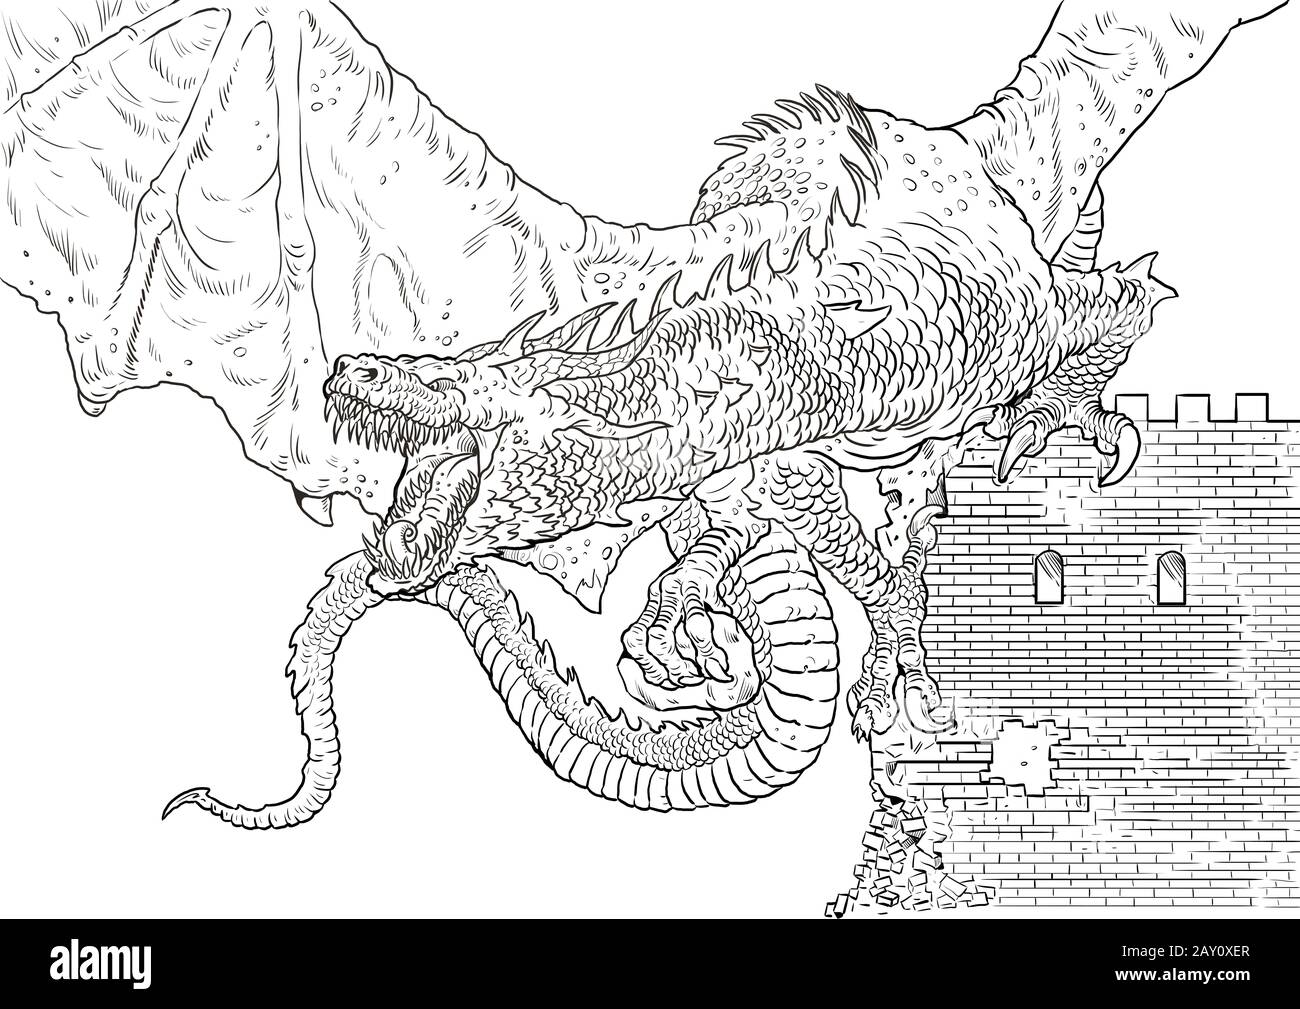 dragon coloring page outline illustration dragon drawing